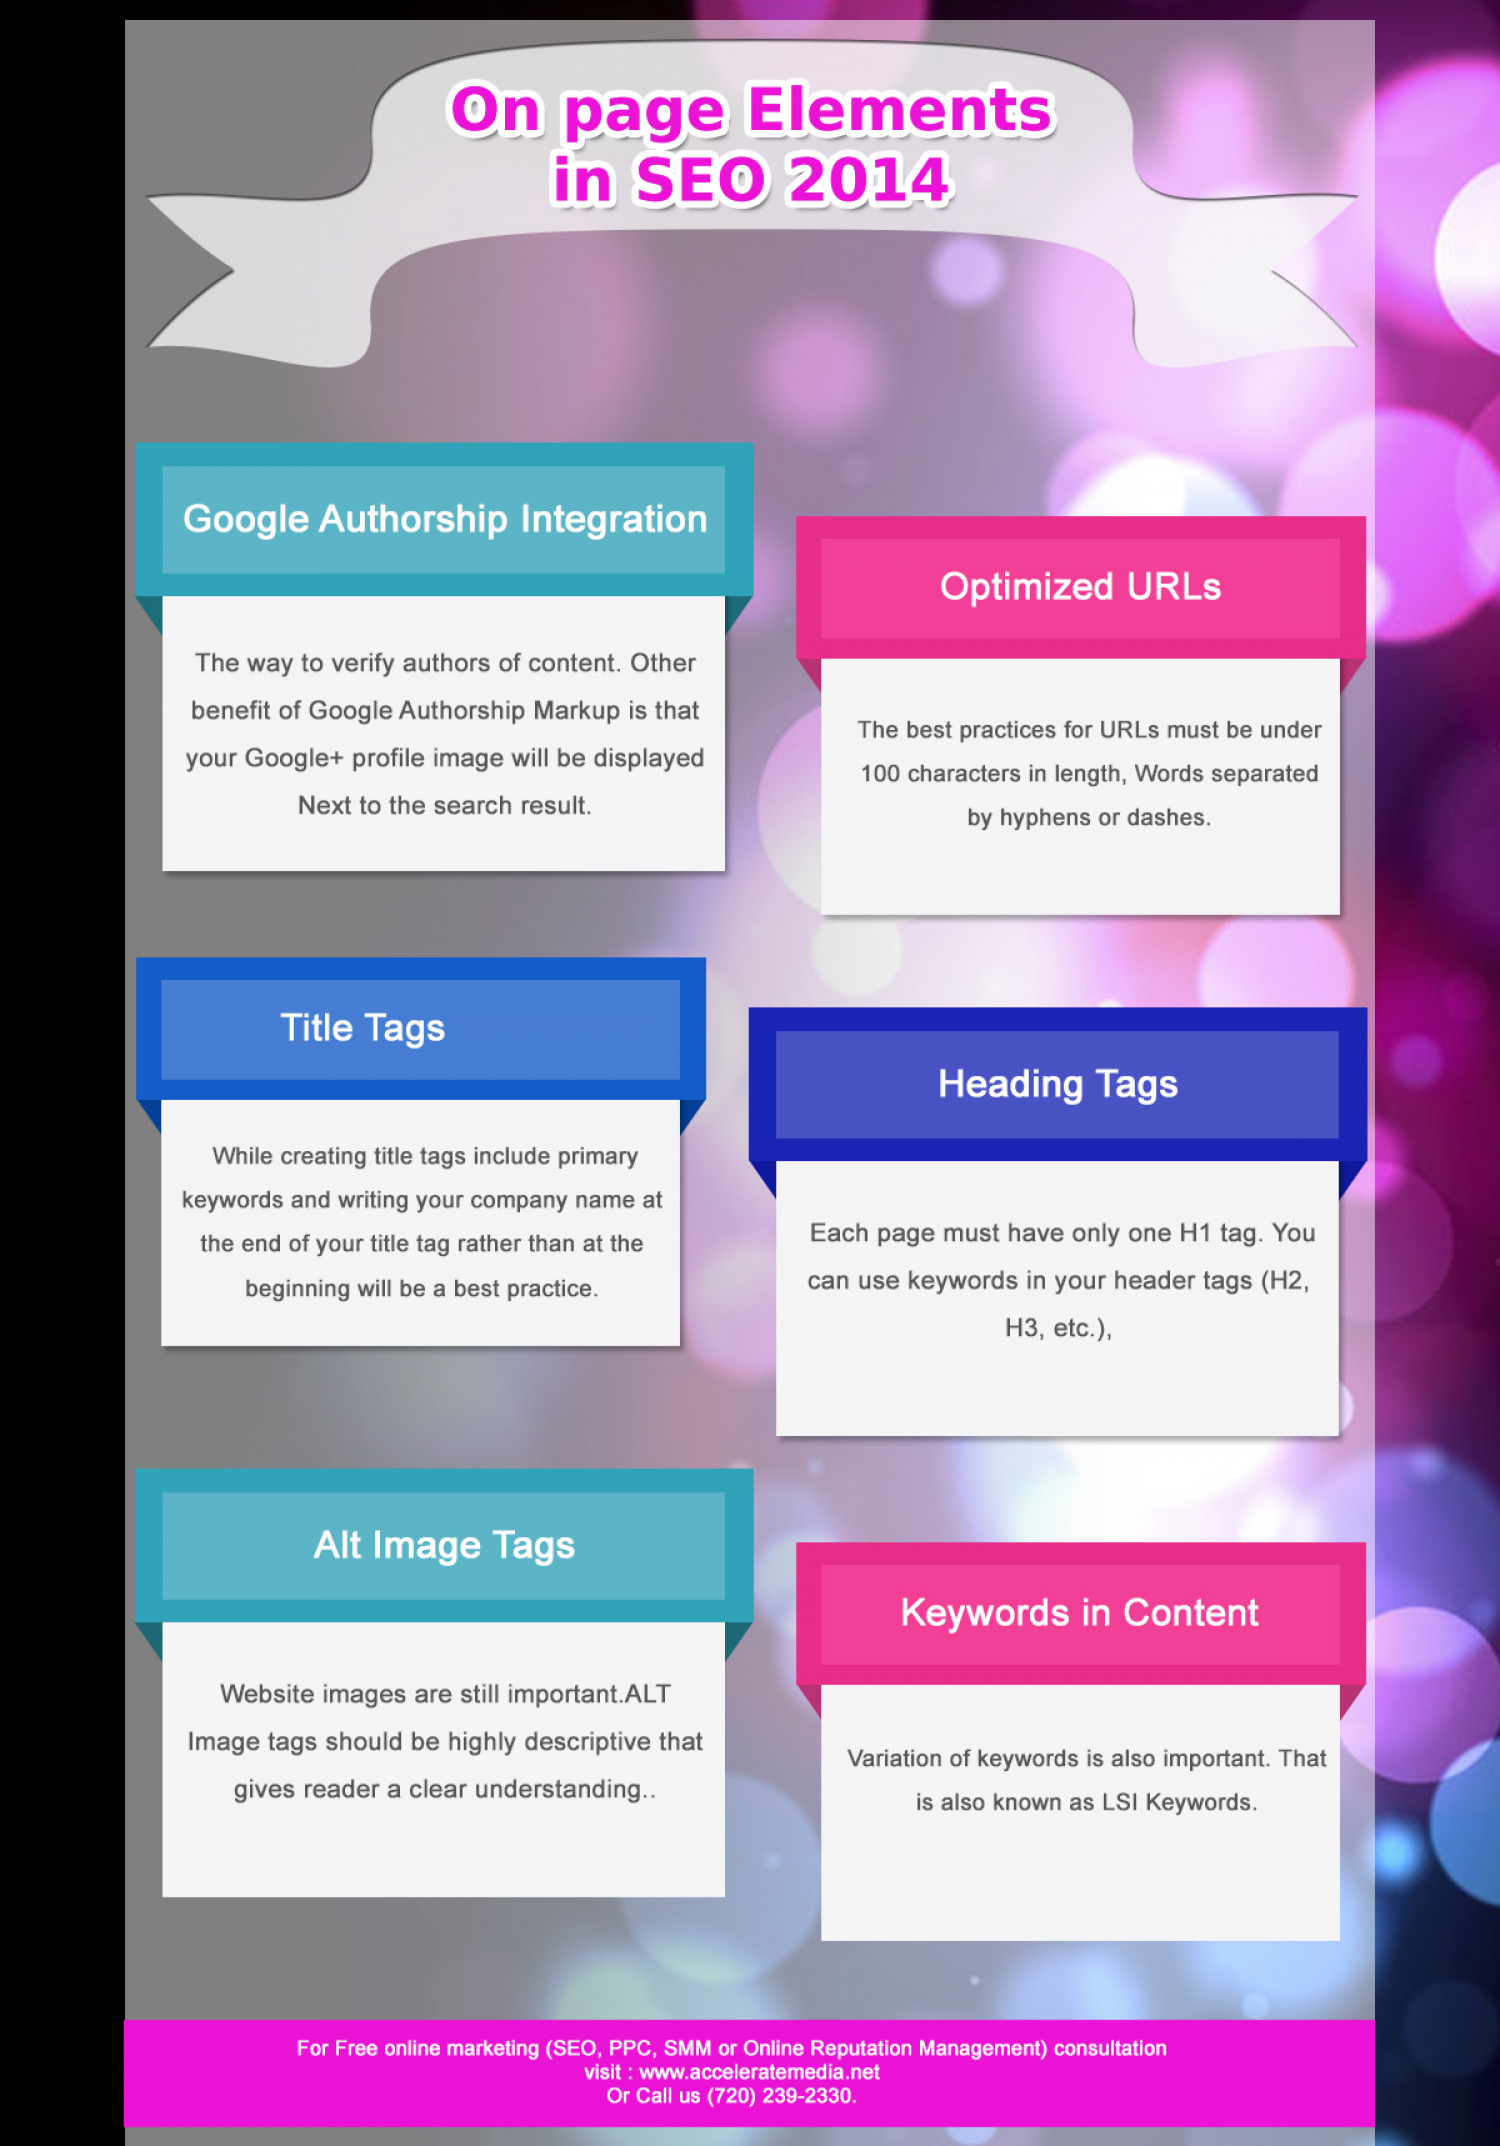 On Page Elements in SEO 2014 Infographic